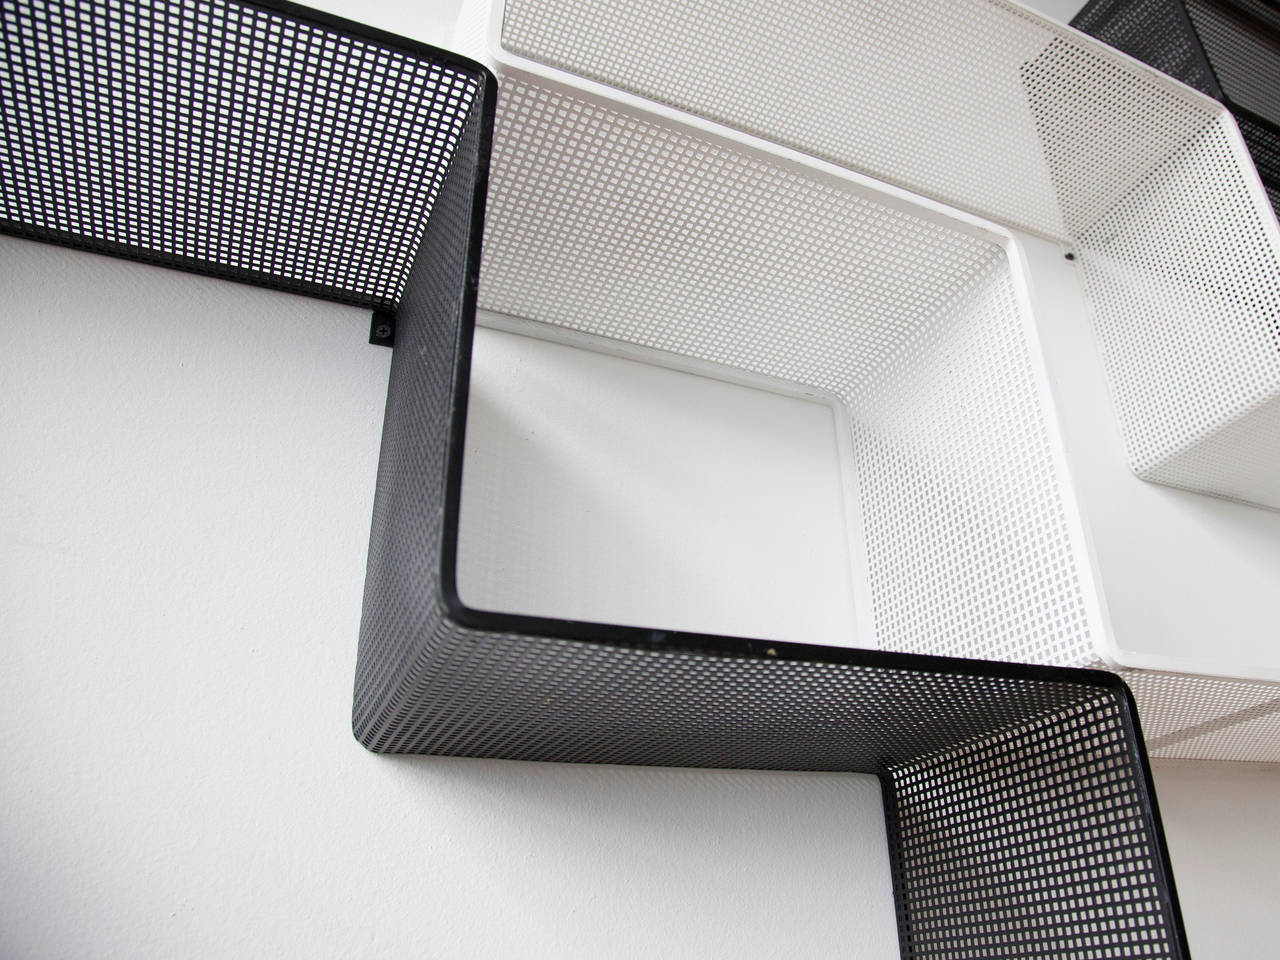 Mathieu Matégot Set of Modular Dedal Shelves In Excellent Condition For Sale In Brooklyn, NY